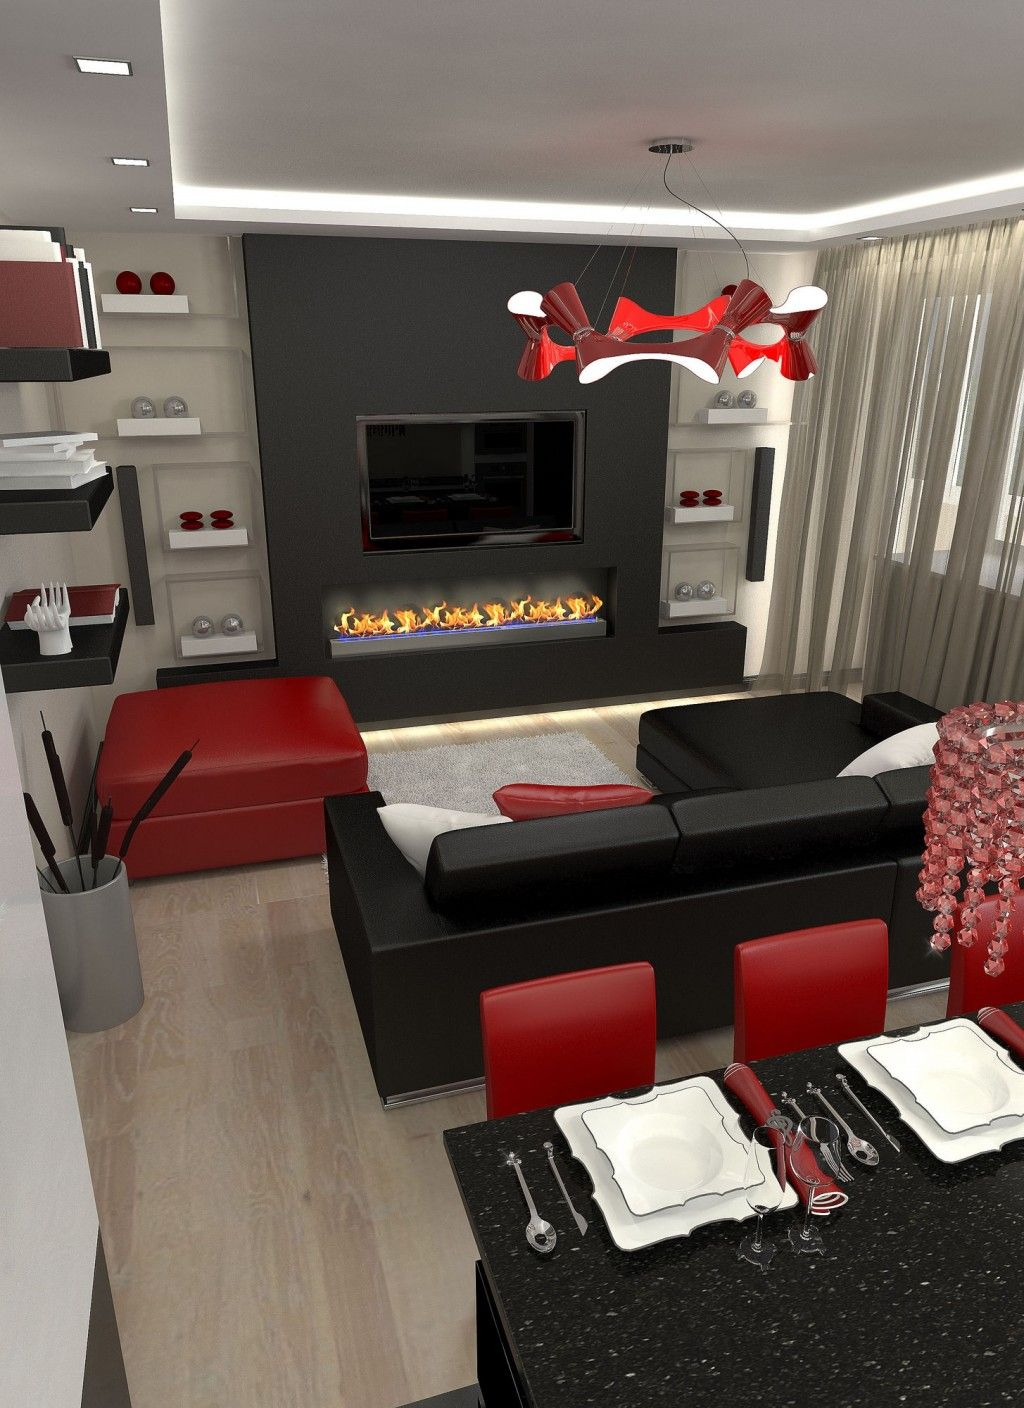 Bedroom colors red and black - Red Black And White Living Room Decor And Furniture Large Size